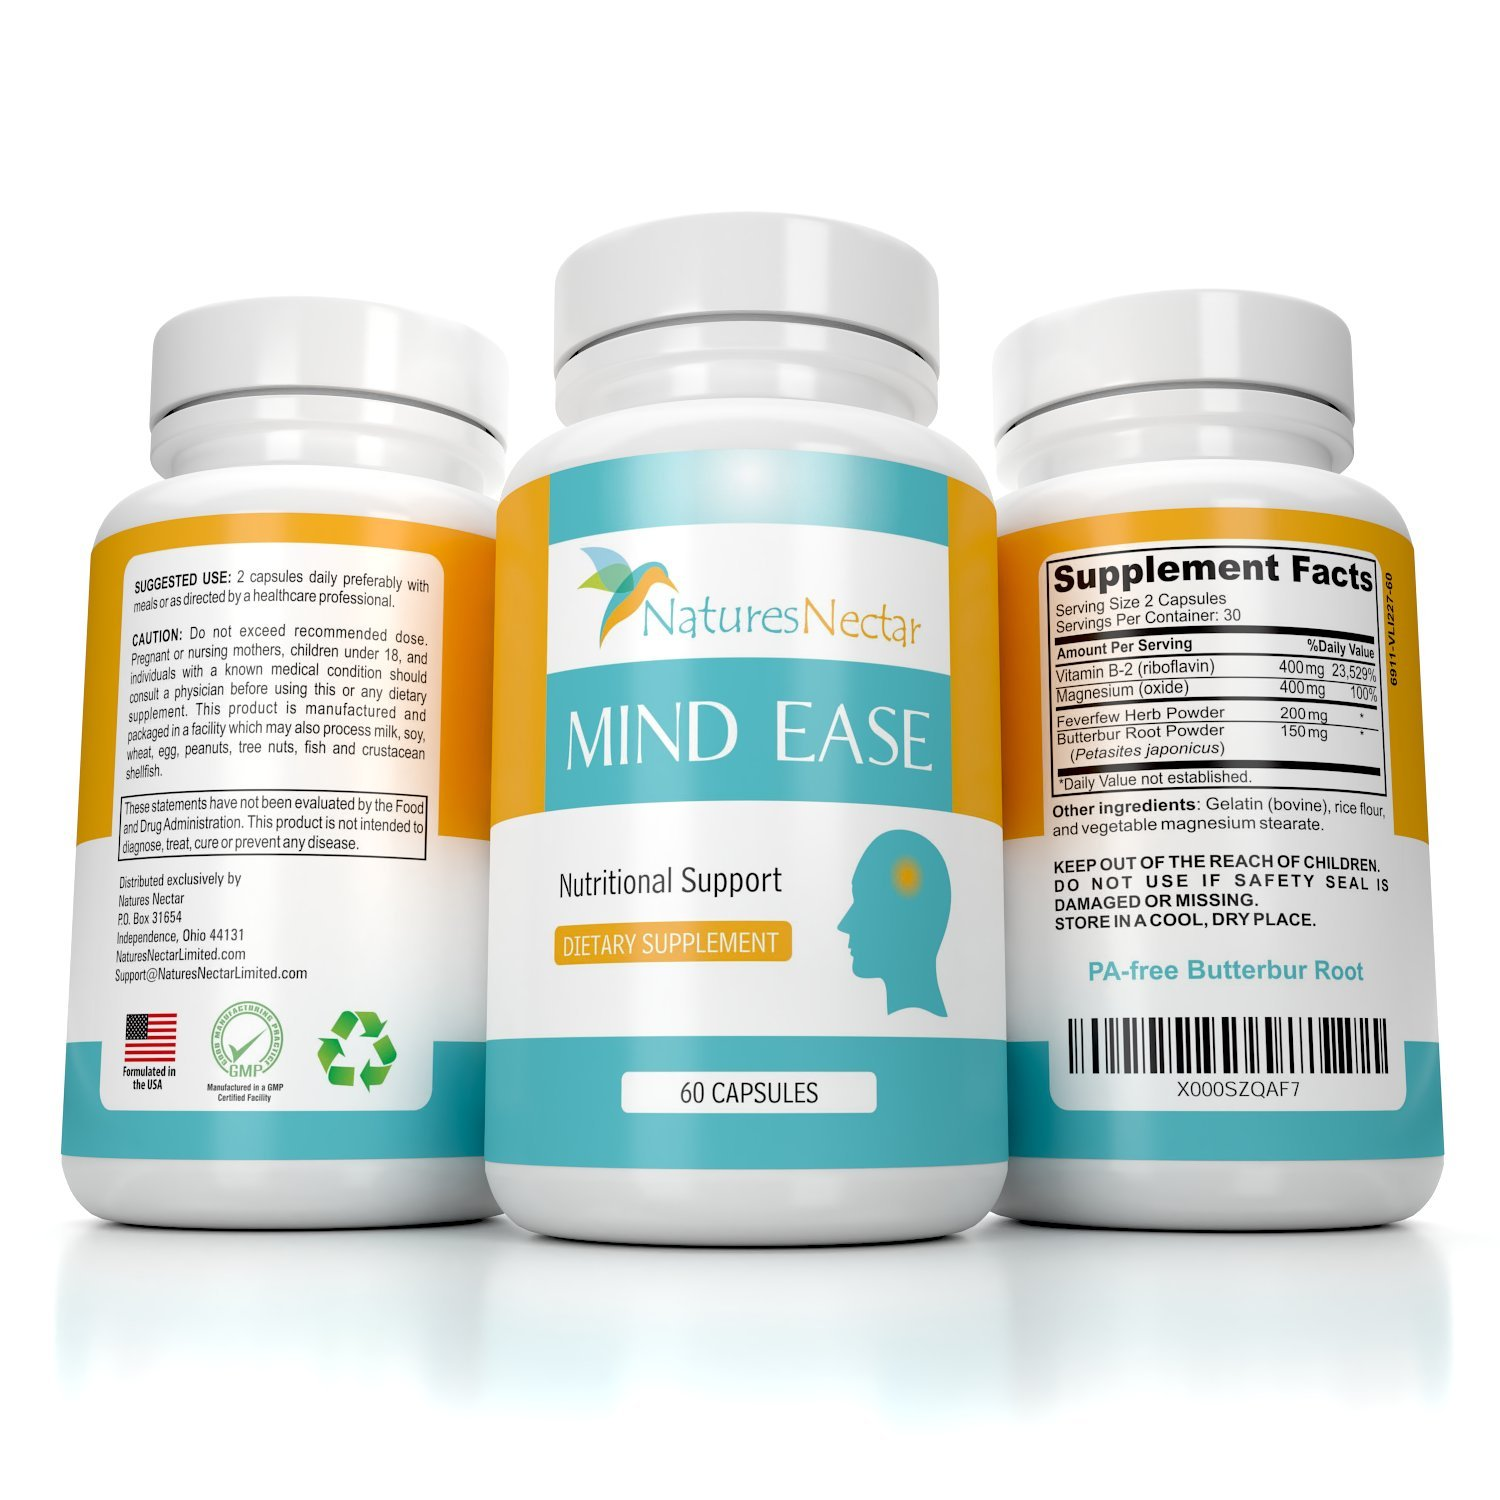 Migraine Relief Supplement - PA Free Butterbur Root, Riboflavin, Magnesium and Feverfew Capsules- Mind Ease's Unique Blend of Original Migraine Supplement Provides Prevention from Migraines Occurring by Natures Nectar